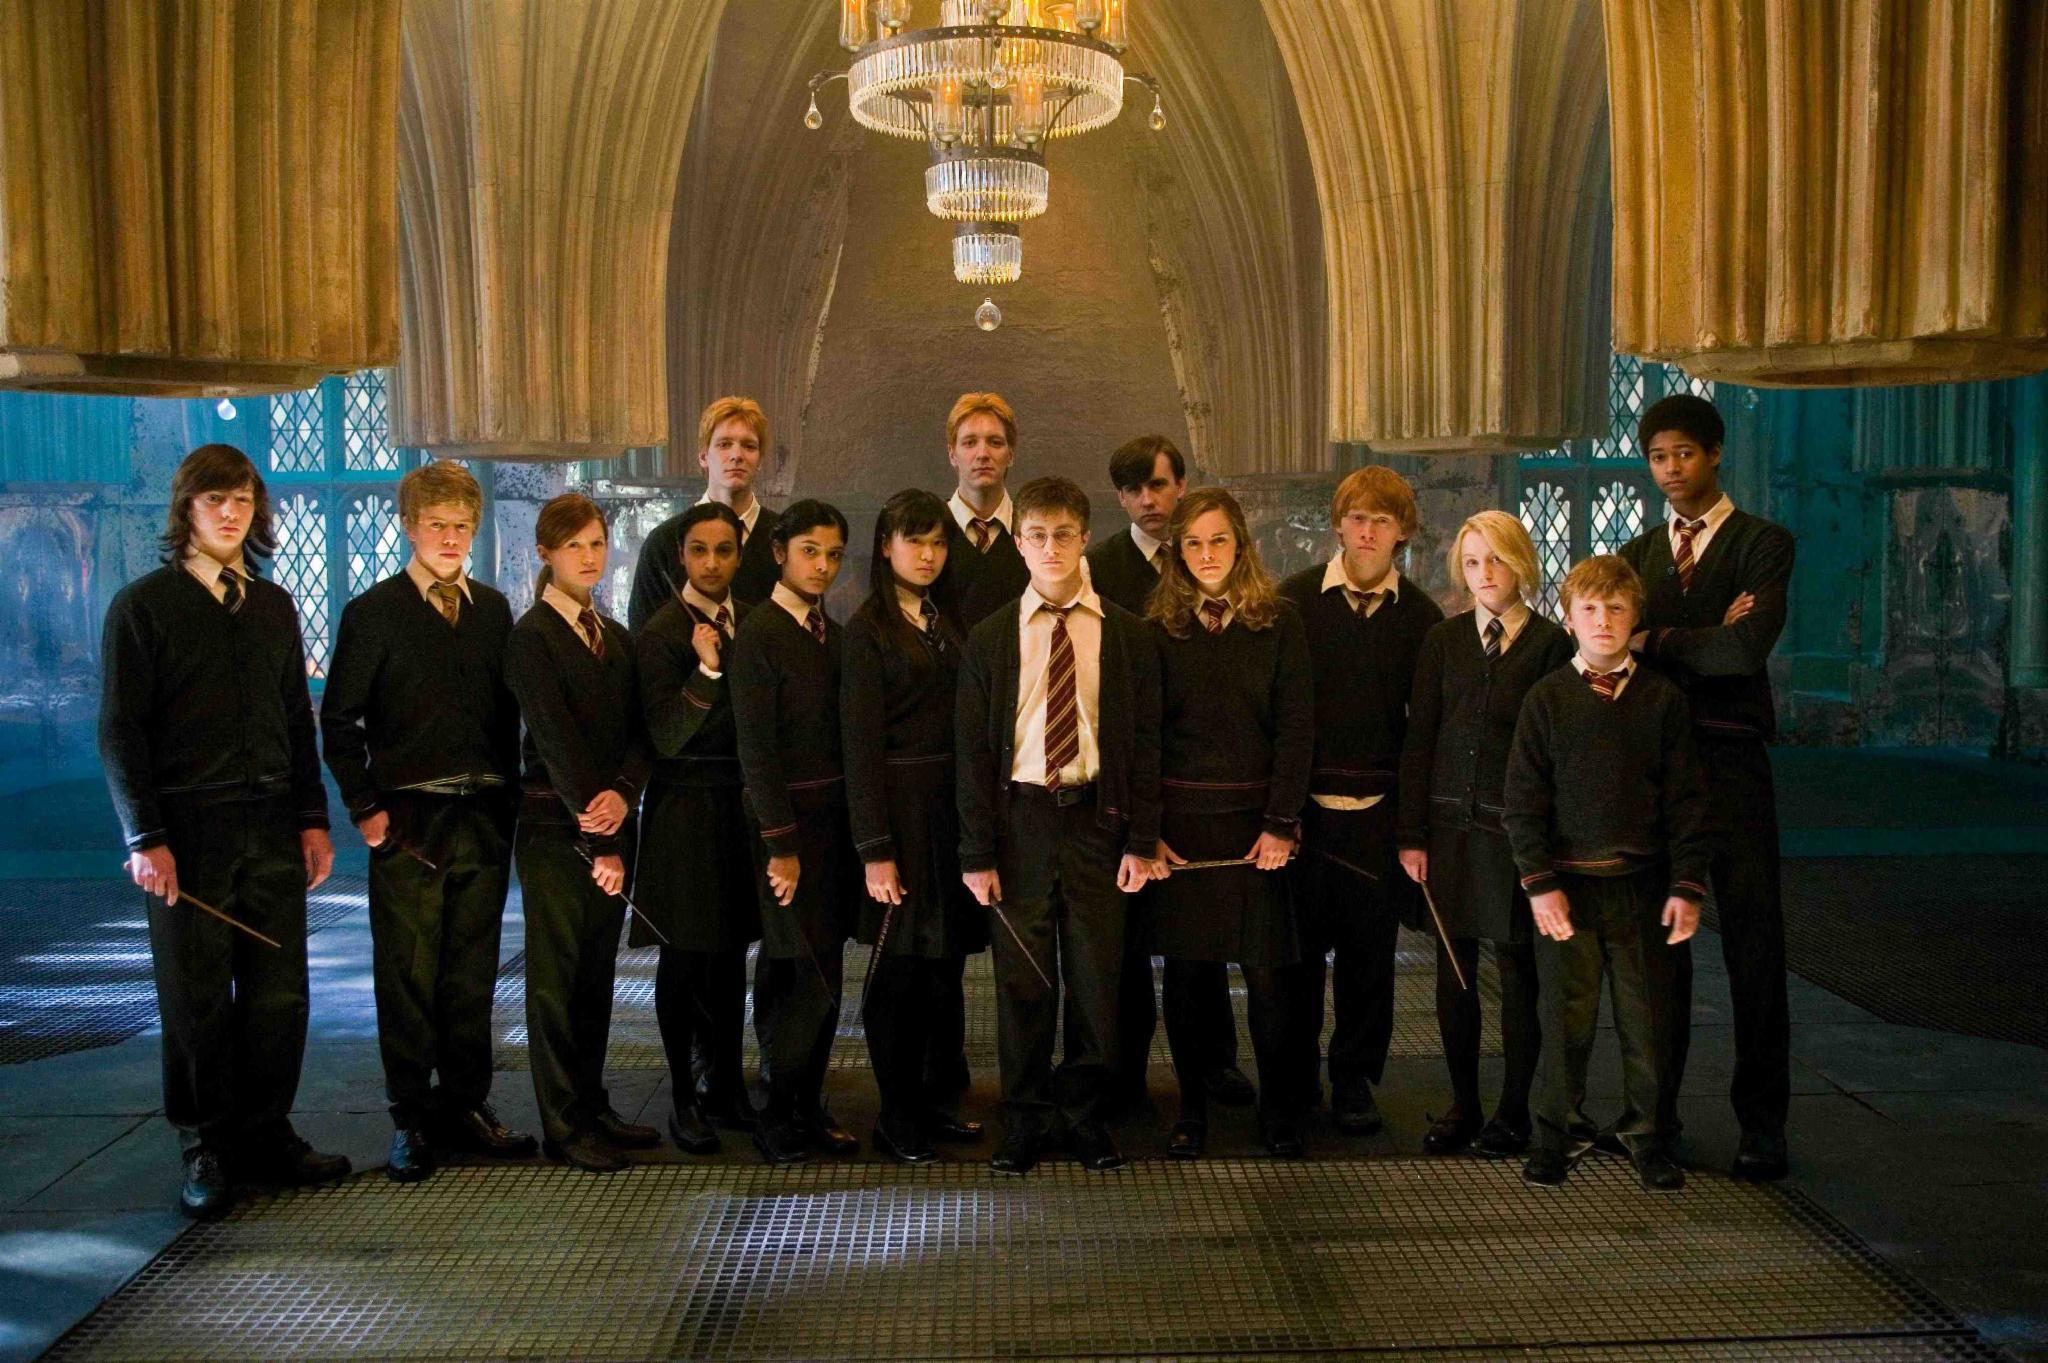 Choose the group that contains the Harry Potter character that is most like you: